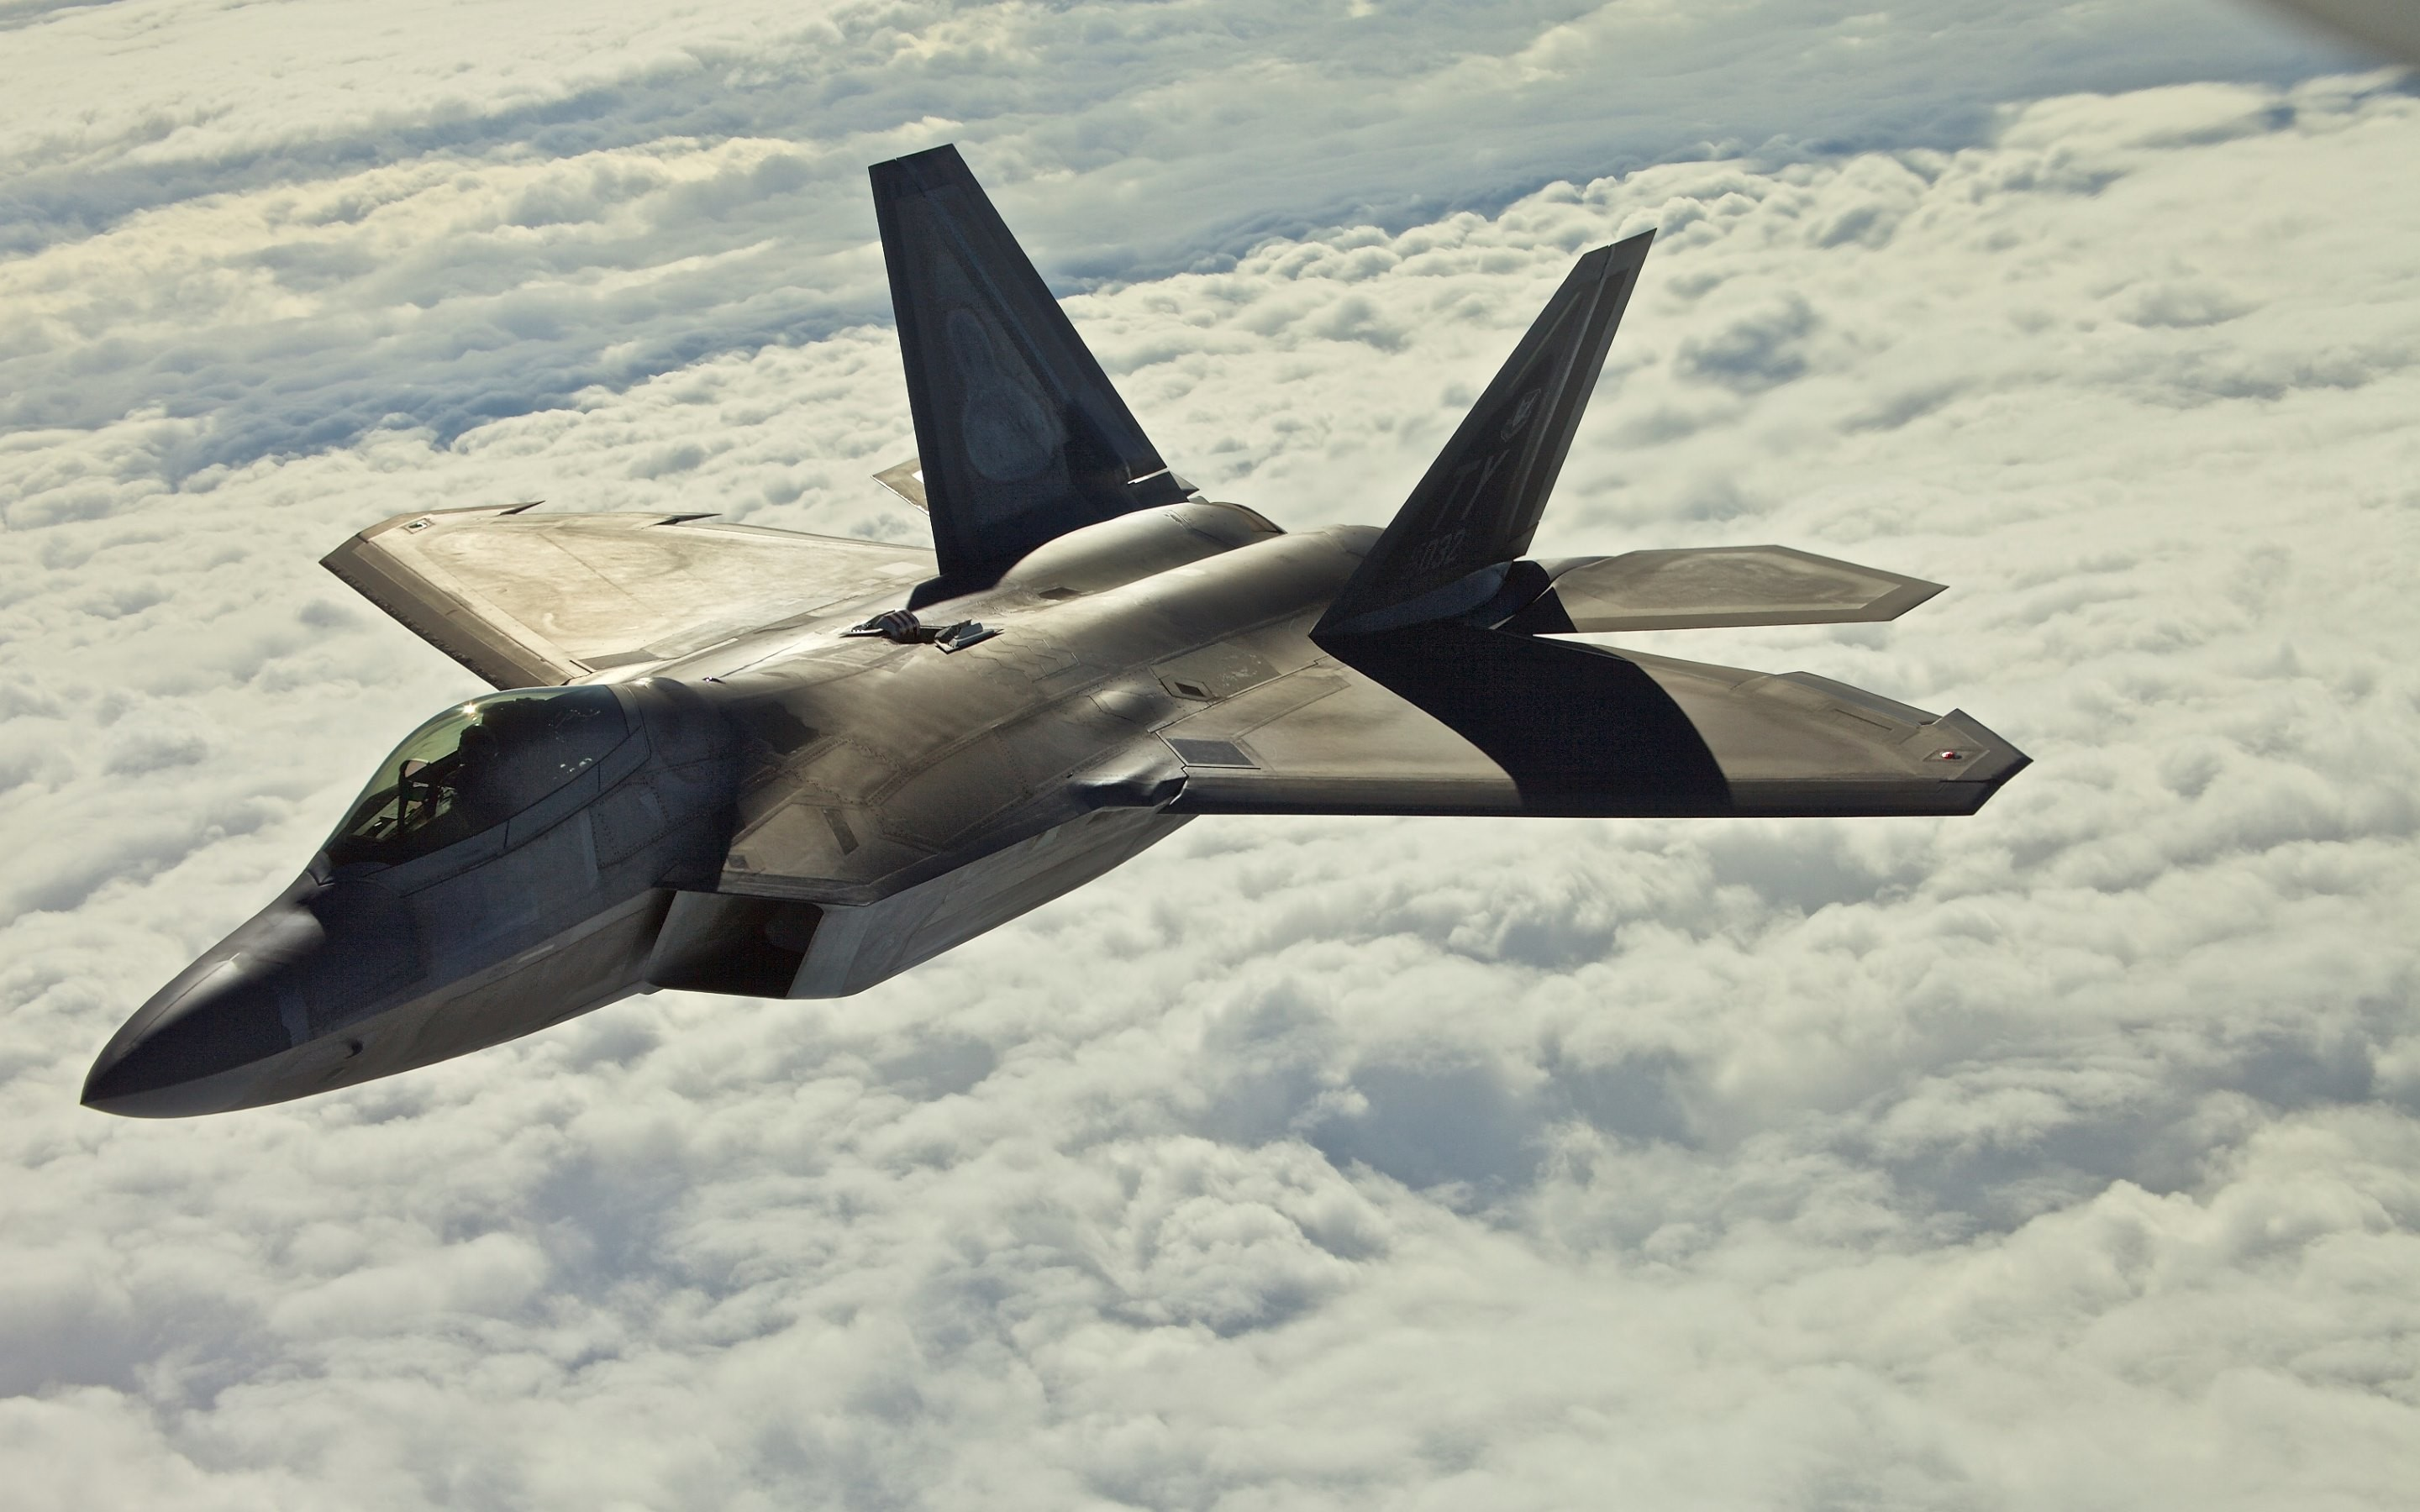 2880x1800 Emblematic picture with the F22 Raptor fighter aircraft shared under CC  license and available for HD and wide screens · Download the F22 Raptor  wallpaper ...